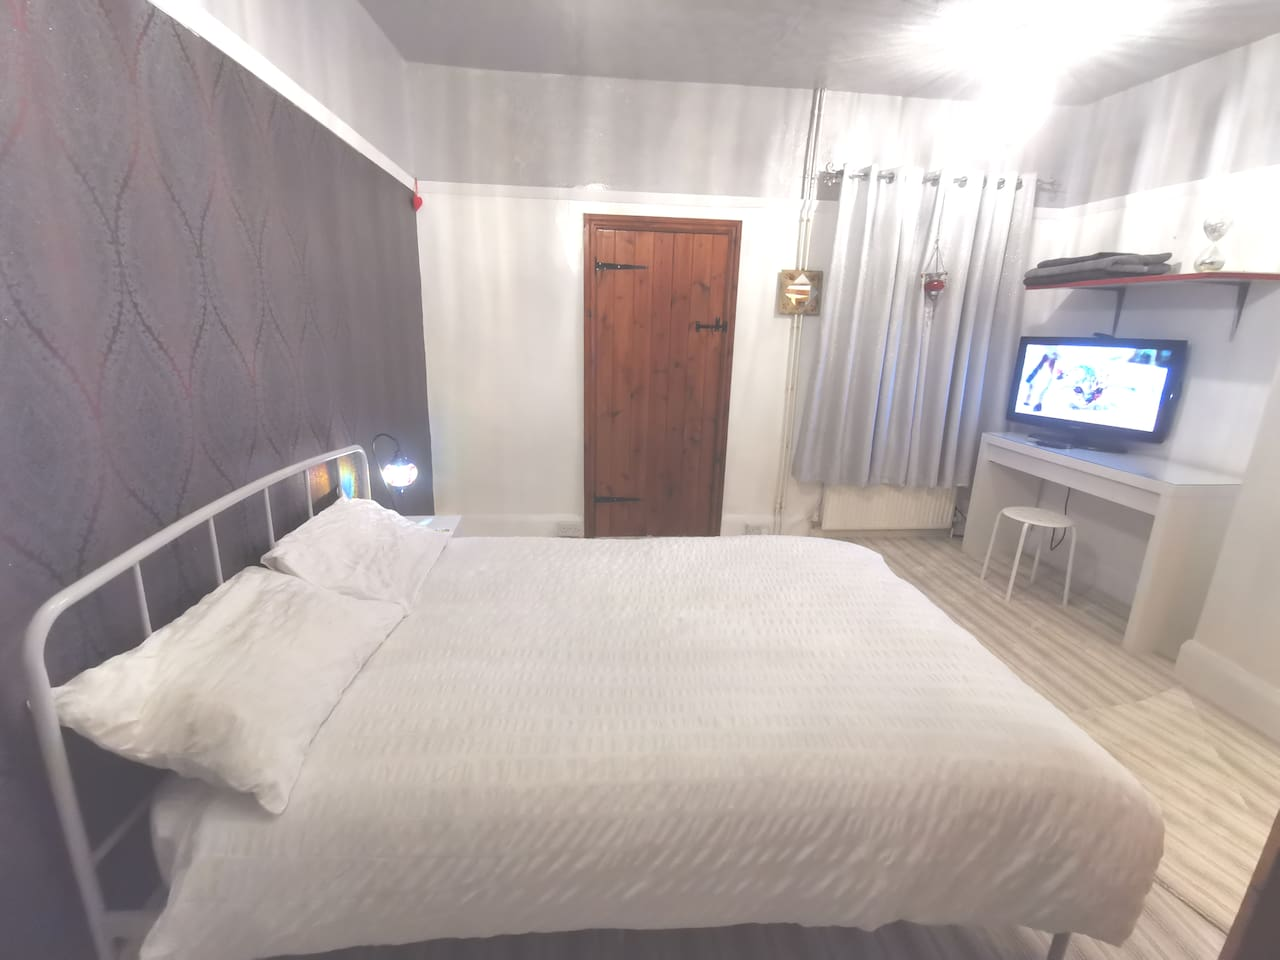 Our lovely newly renovated double bedroom which can accommodate 3 people